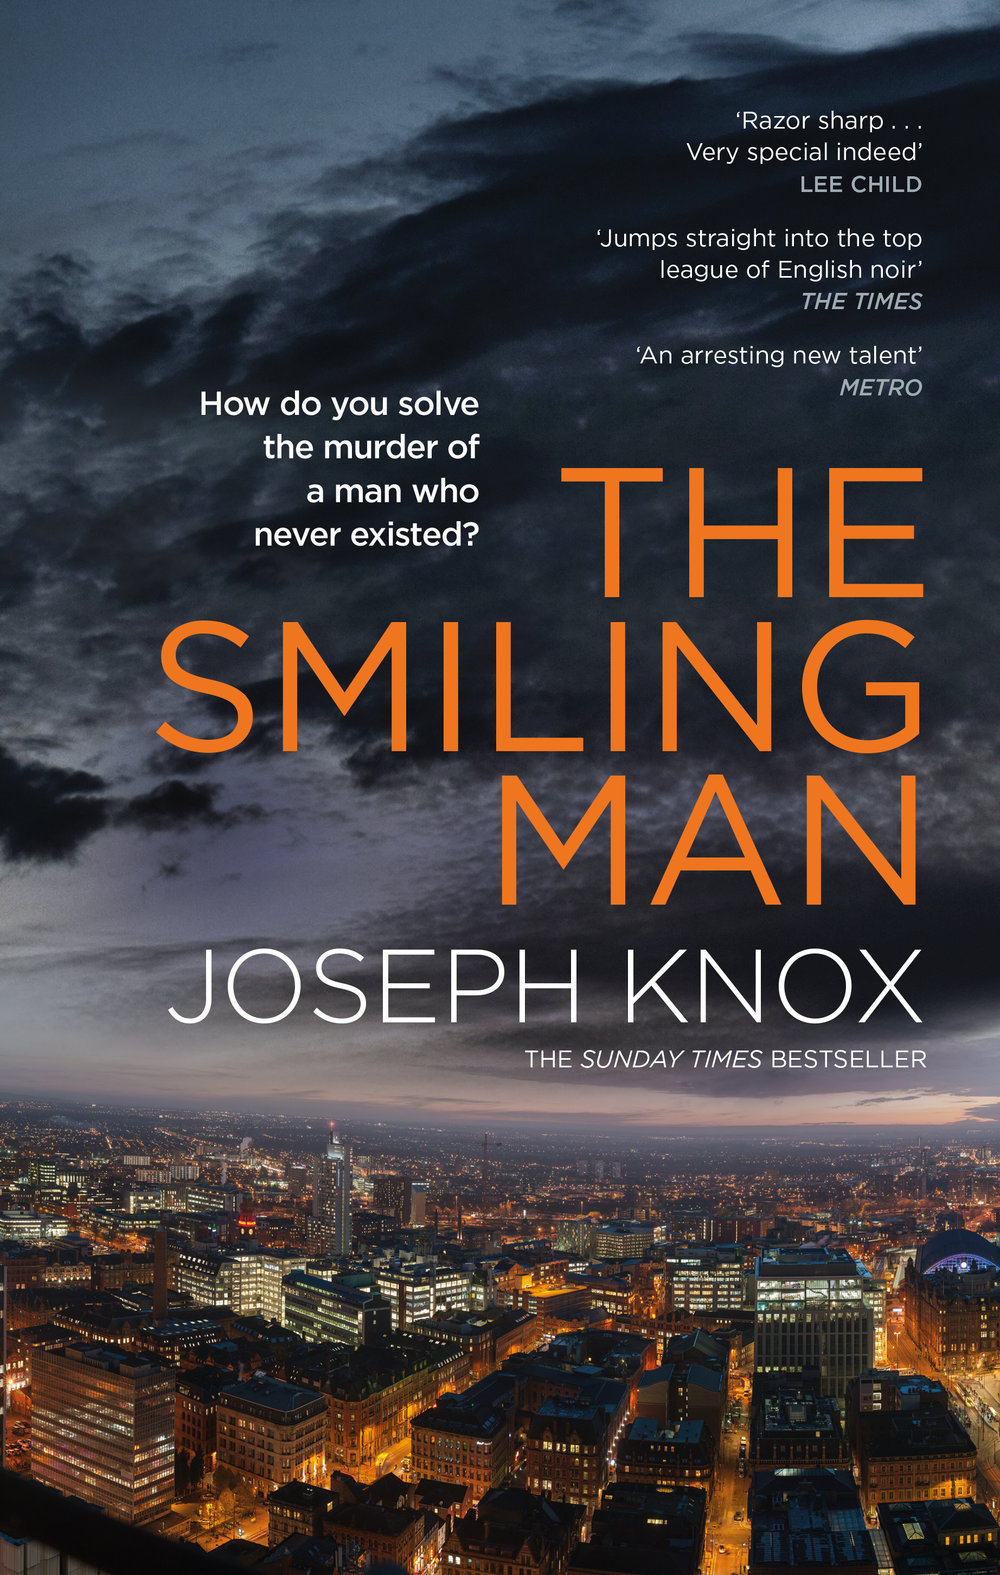 Some early feedback on The Smiling Man: - 'Knox writes electric novels. A major voice in fiction, and a writer of furious talent.' (A.J. Finn, author of The Woman in the Window)'Knox's first novel was pedal-to-the-floor stuff, and this is even more powerful. One thing is sure: Knox is no one-hit wonder.' (Barry Forshaw, The Guardian)'If you liked Sirens, you will love The Smiling Man. Gritty, noir, and packing a punch from the very first page.' (Jane Harper, author of The Dry)